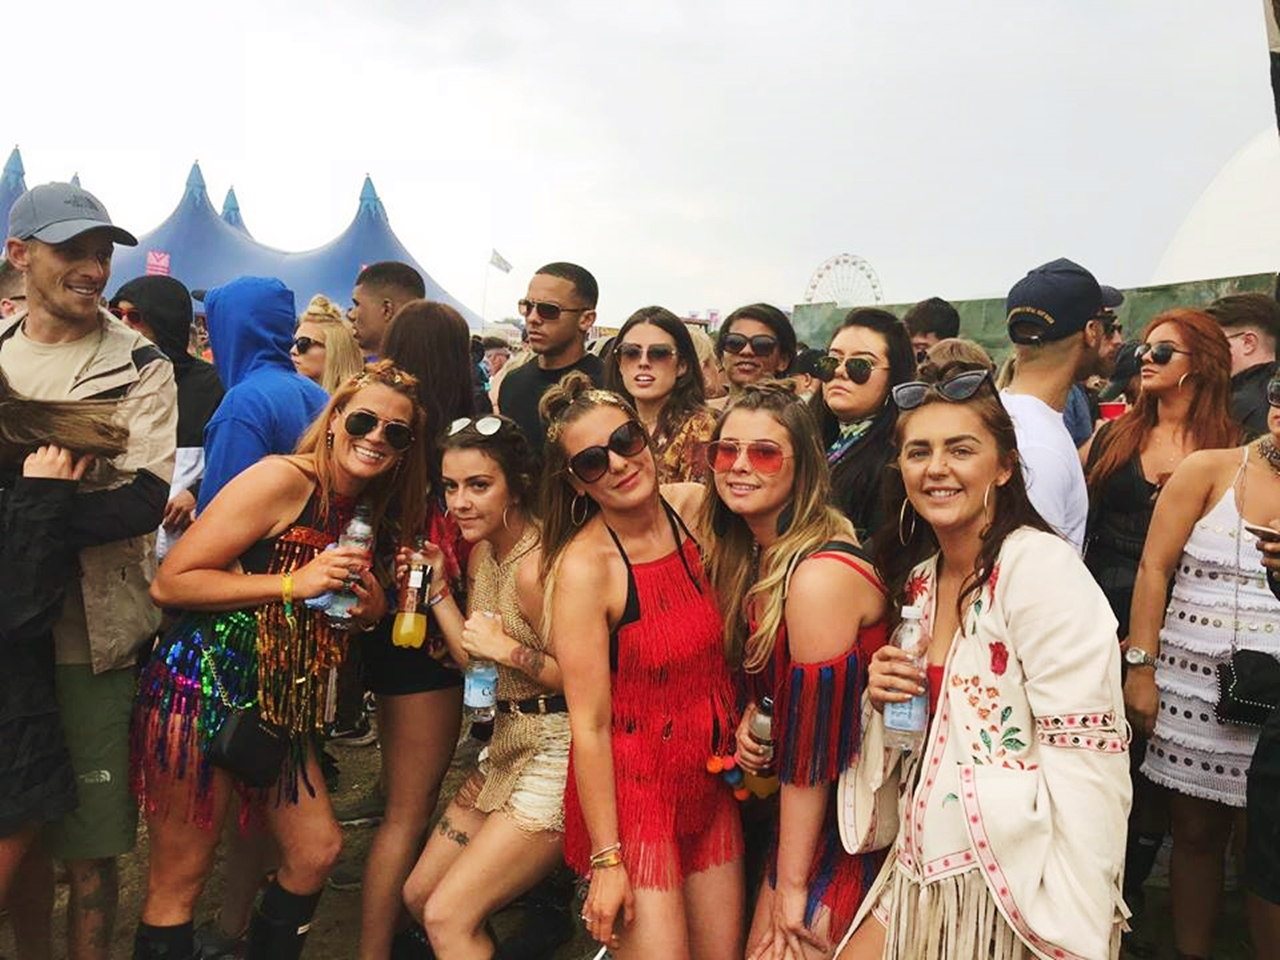 what people wear to parklife shorts outfits 2018